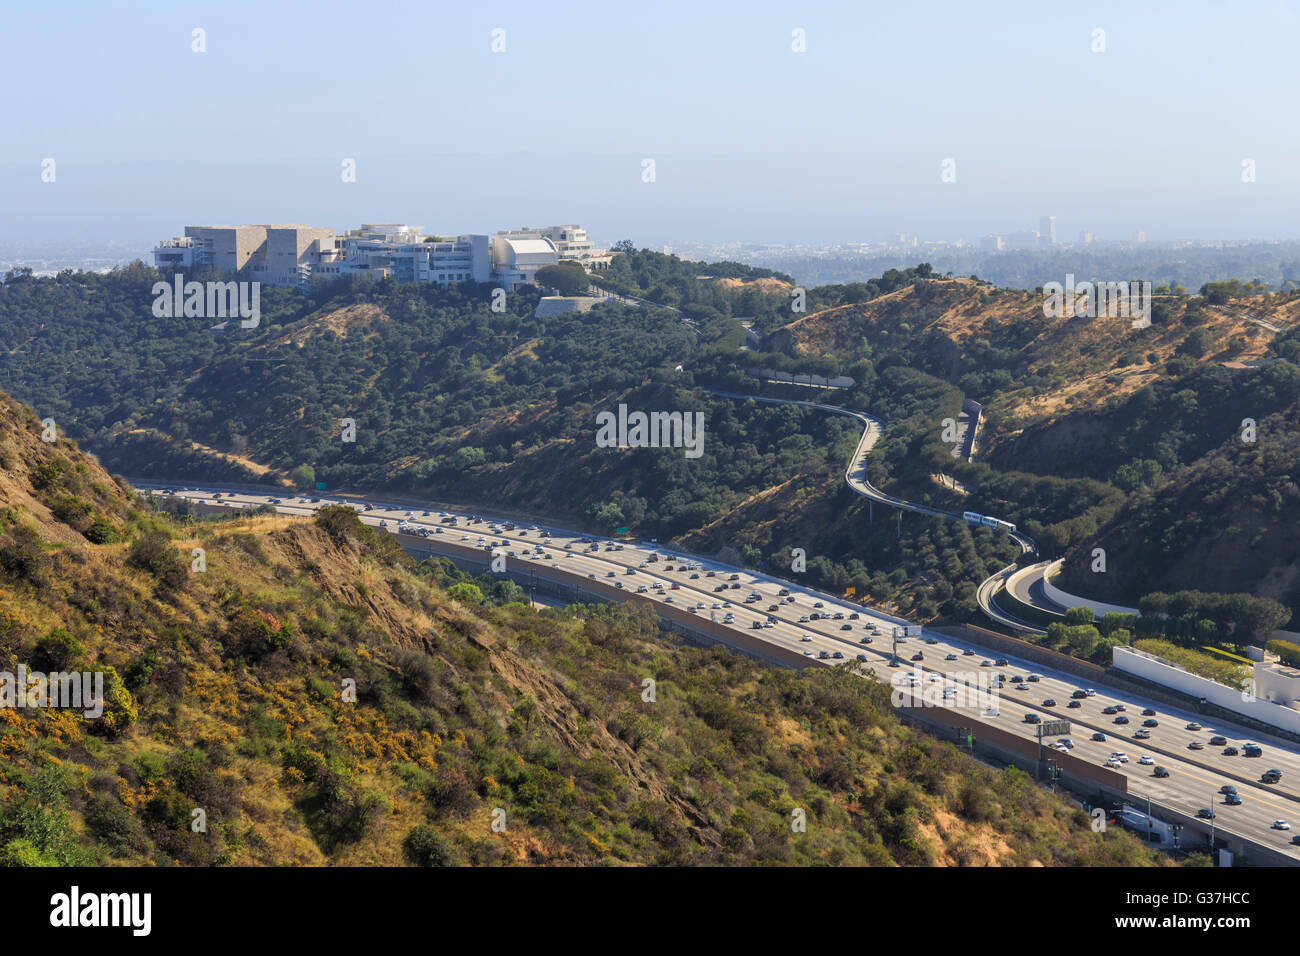 APR 20, Los Angeles: The famous getty center view from the getty view park on APR 20, 2015 at Los Angeles - Stock Image